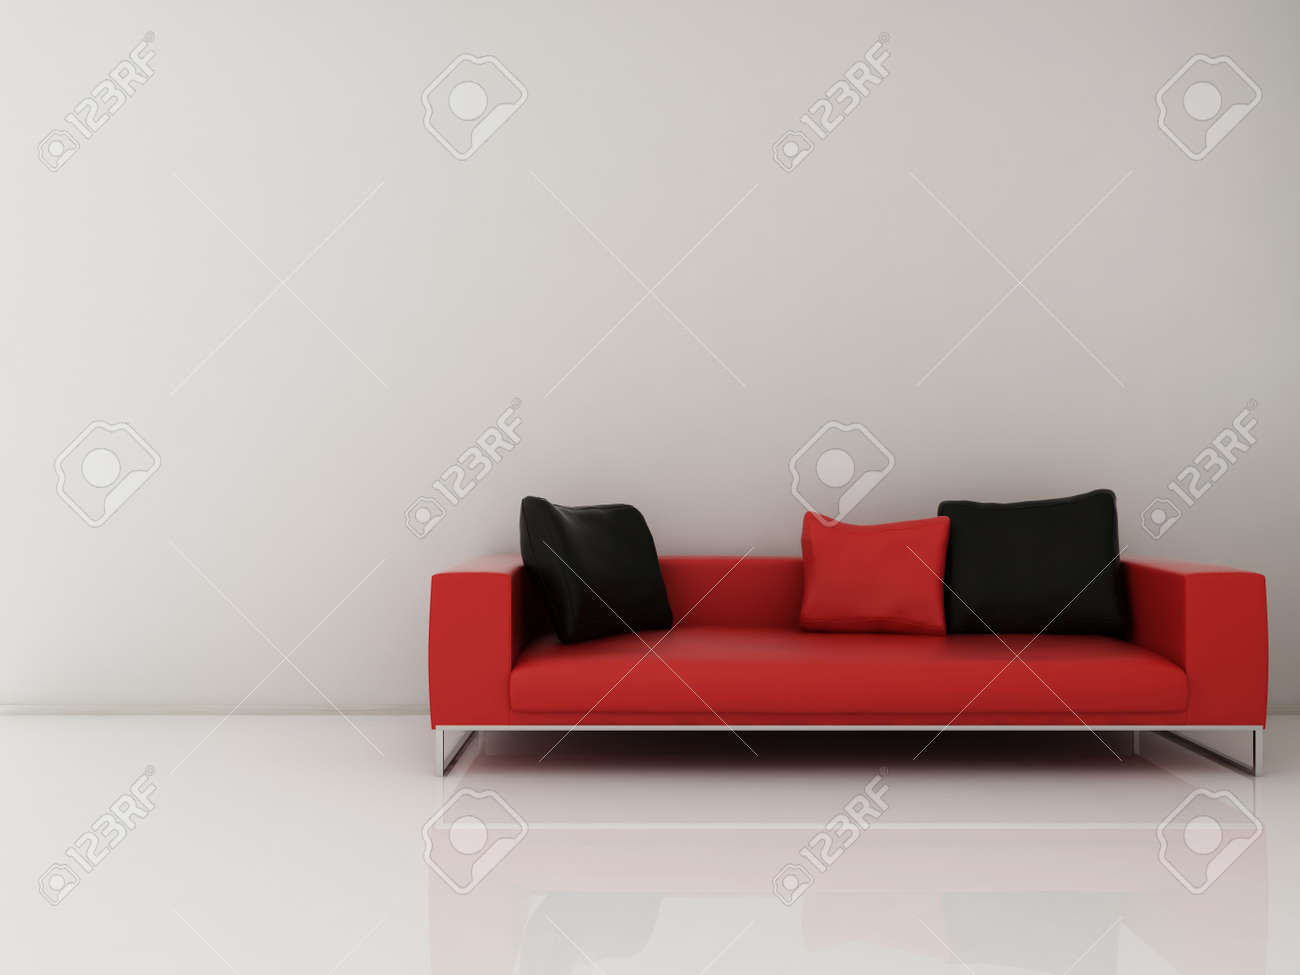 Red Leather Couch to face a blank white wall - 5573582